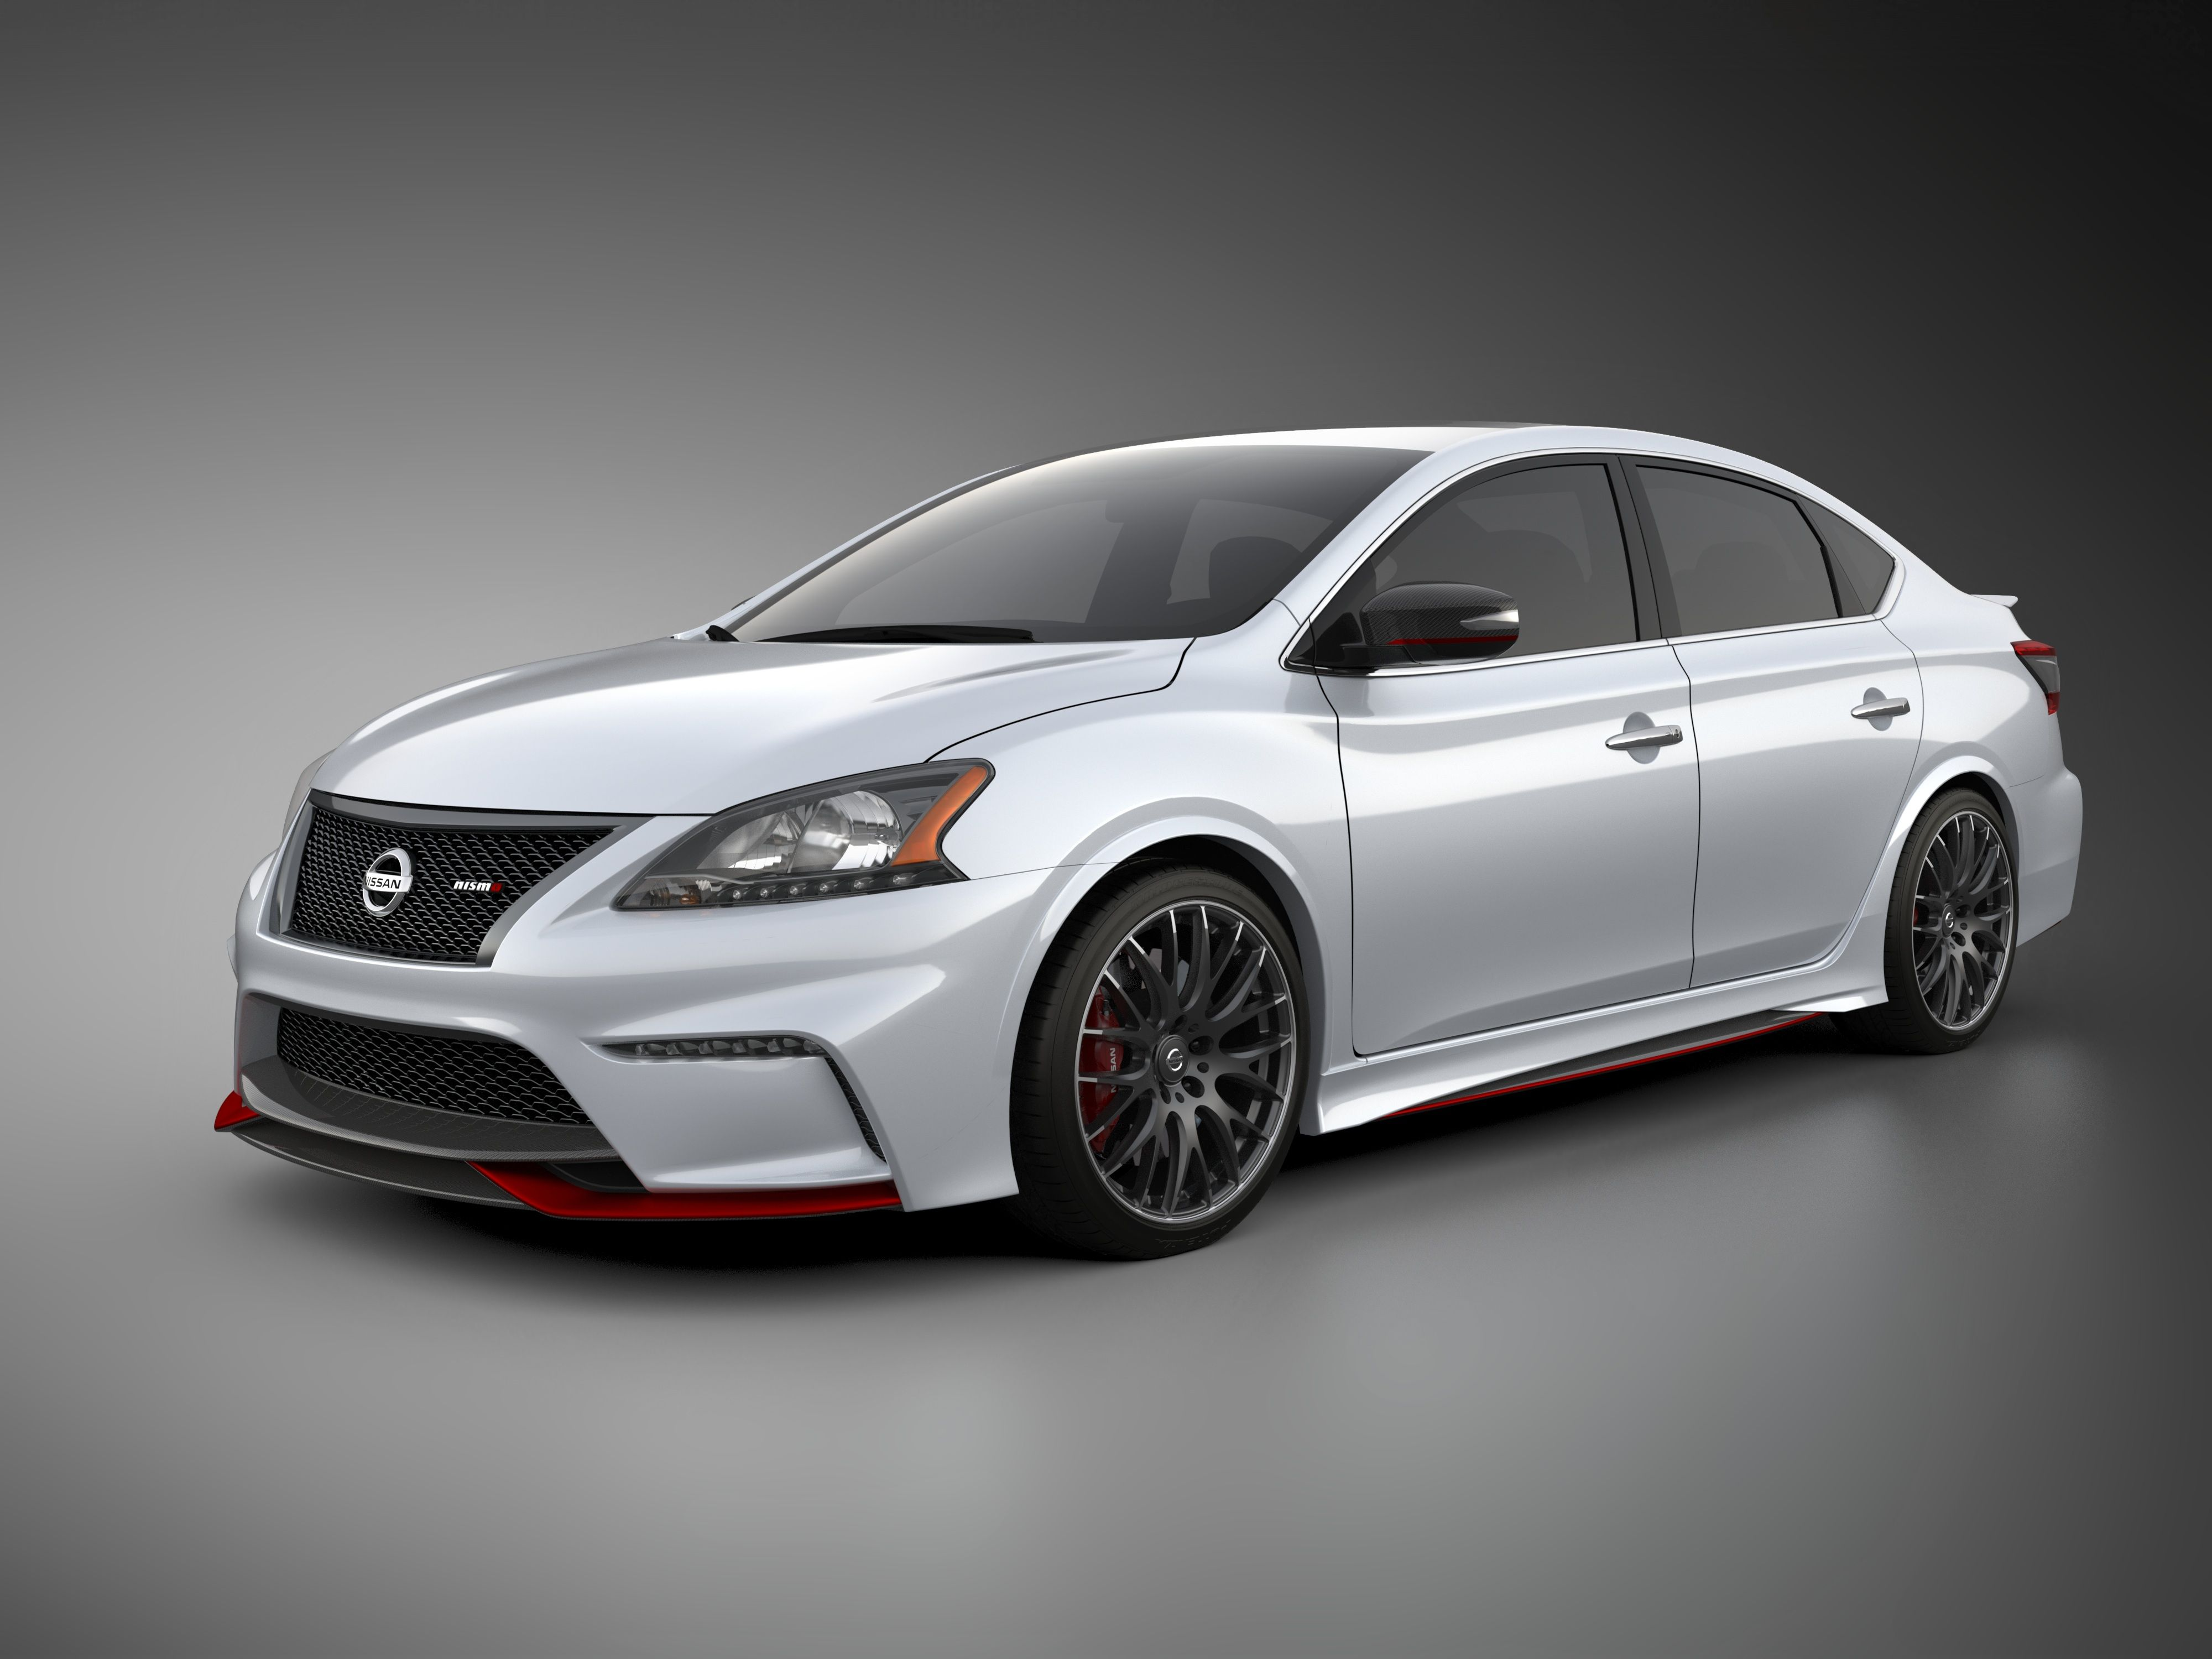 Nissan sentra nismo concept is built on the foundation of the nissan sentra nismo concept is built on the foundation of the nissan sentra offering outstanding vanachro Images